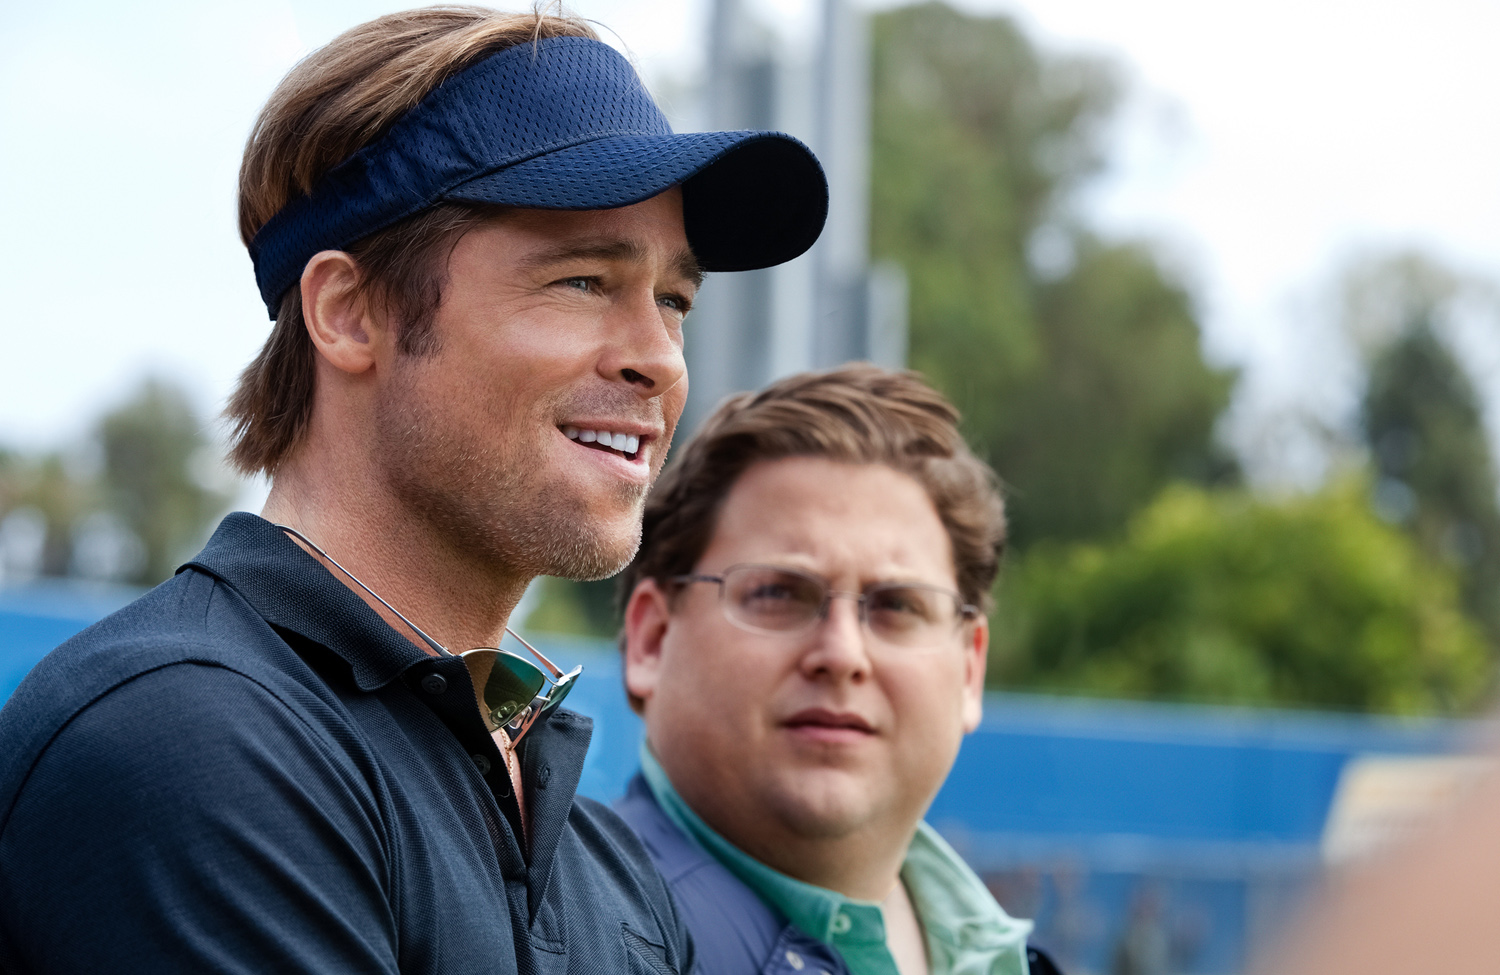 http://2.bp.blogspot.com/-p5WSVbGZv4Y/TpGLw7y0s9I/AAAAAAAACFw/UZu-YbbkSYk/s1600/moneyball-movie-photo.jpg